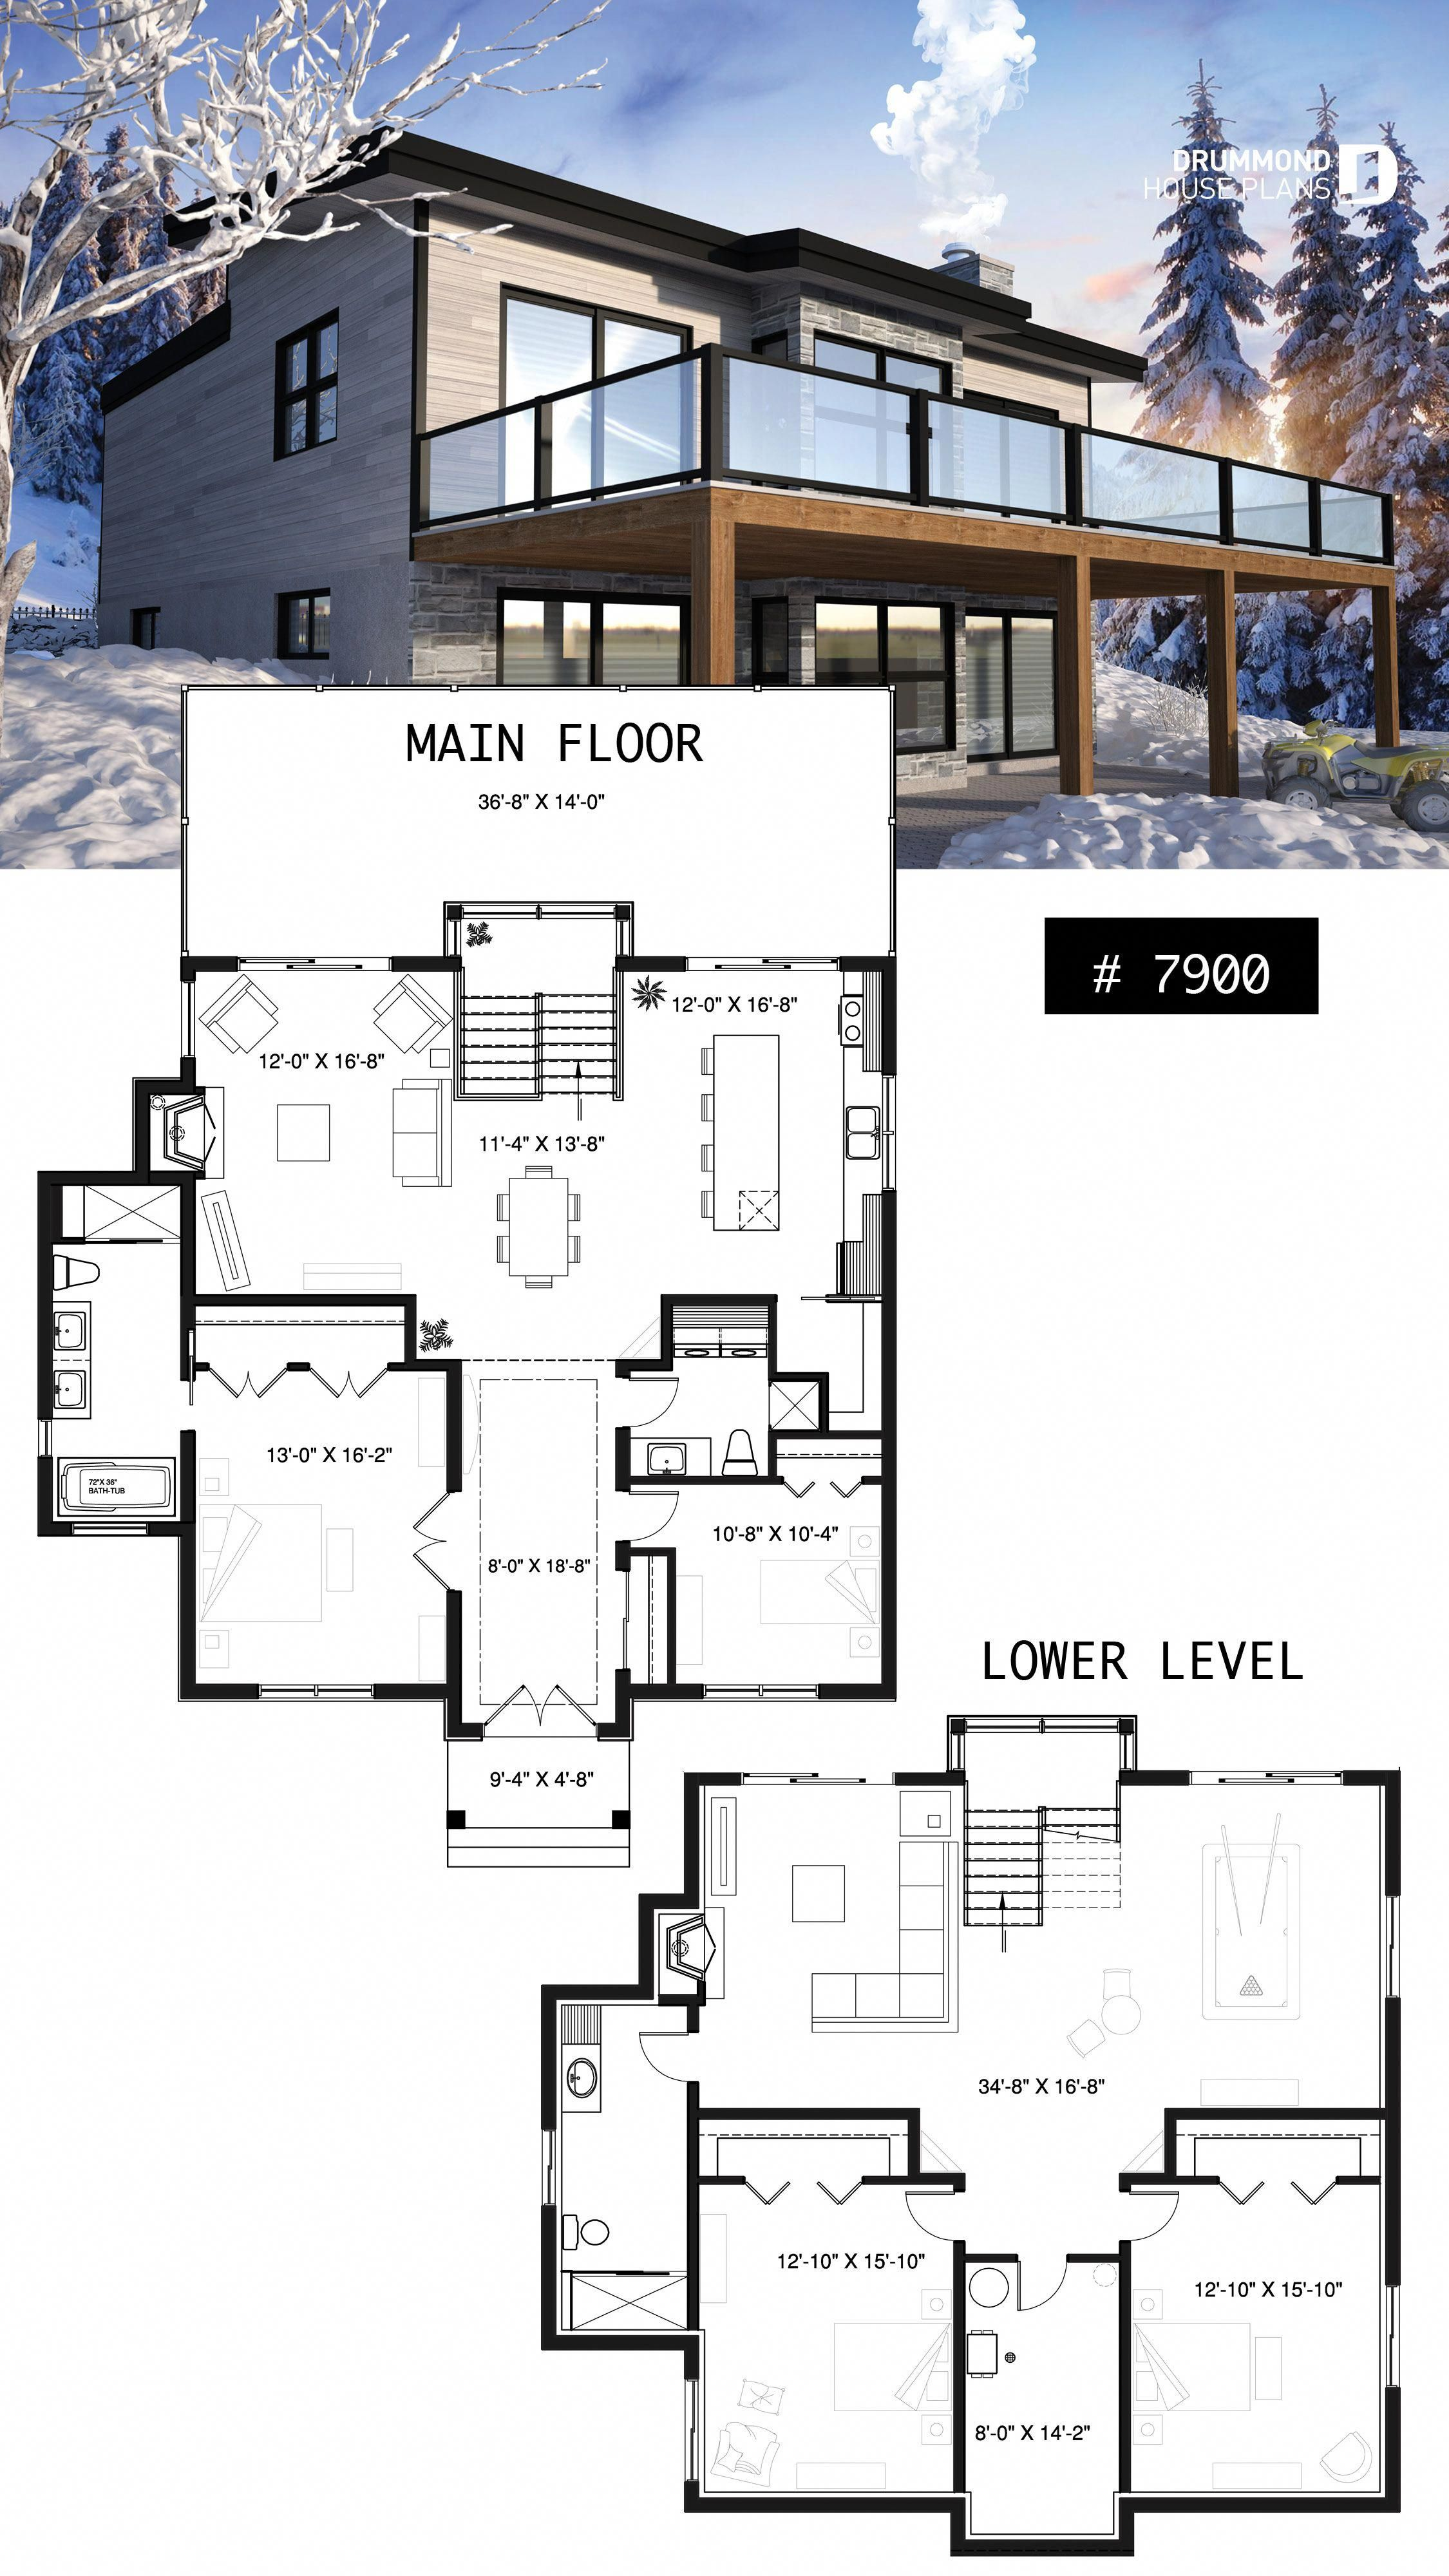 Modern Cottage House Plan With Finished Walkout Basement 4 Beds 3 Baths Large Rear Terrace 2 Firepl Basement House Plans Lake House Plans Beach House Plans